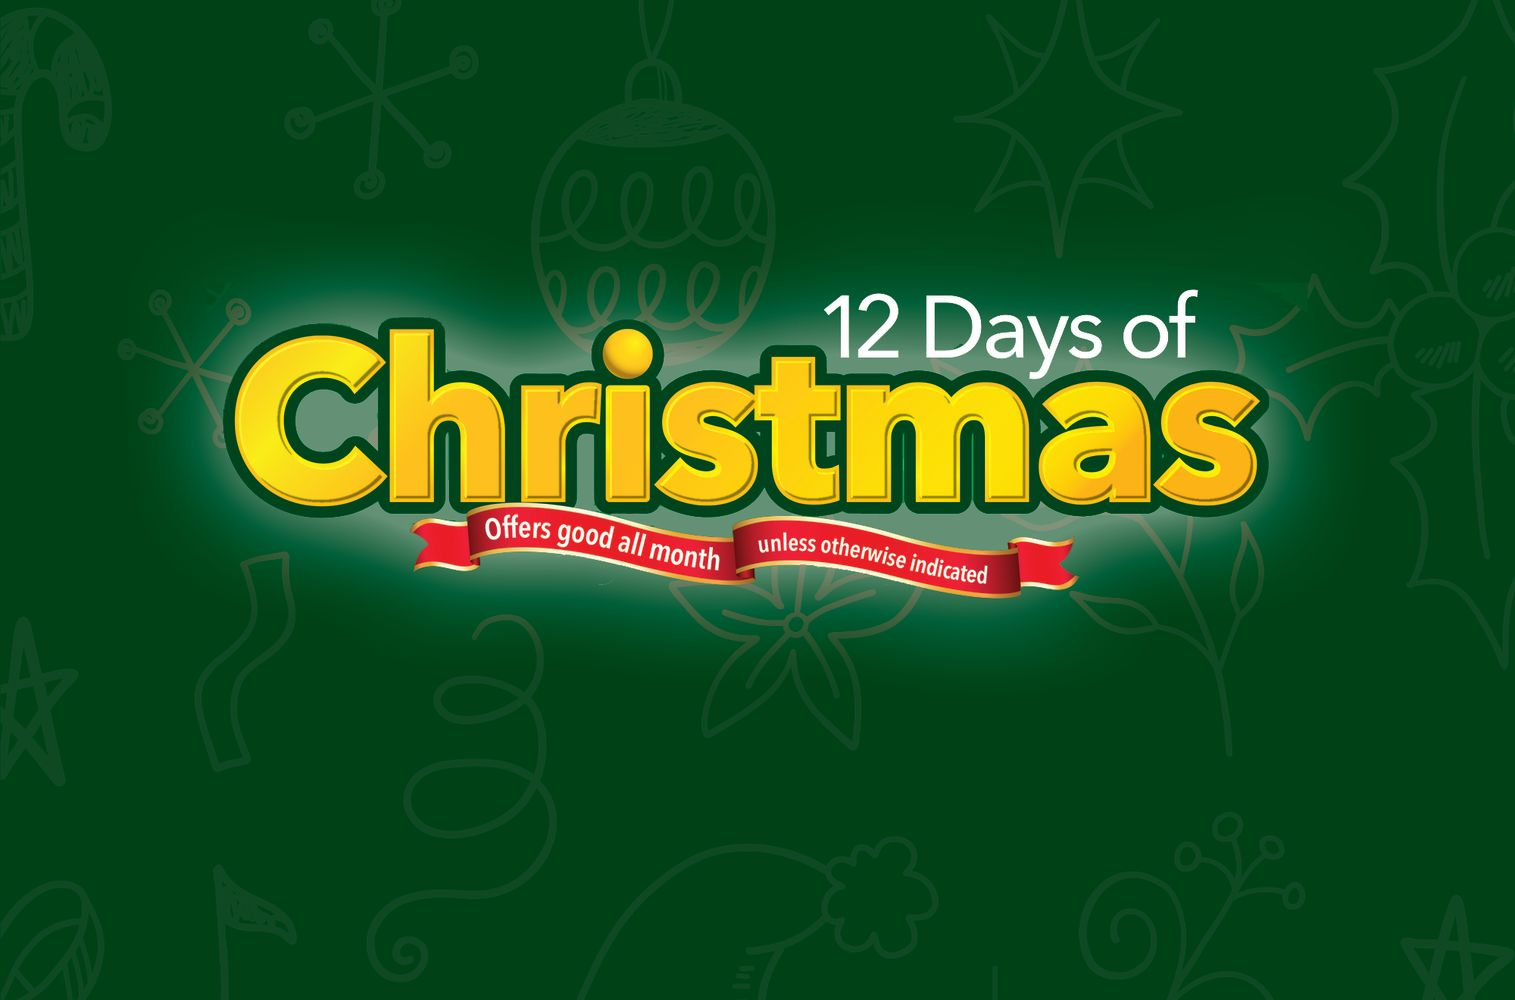 12 Days of Christmas Promotions